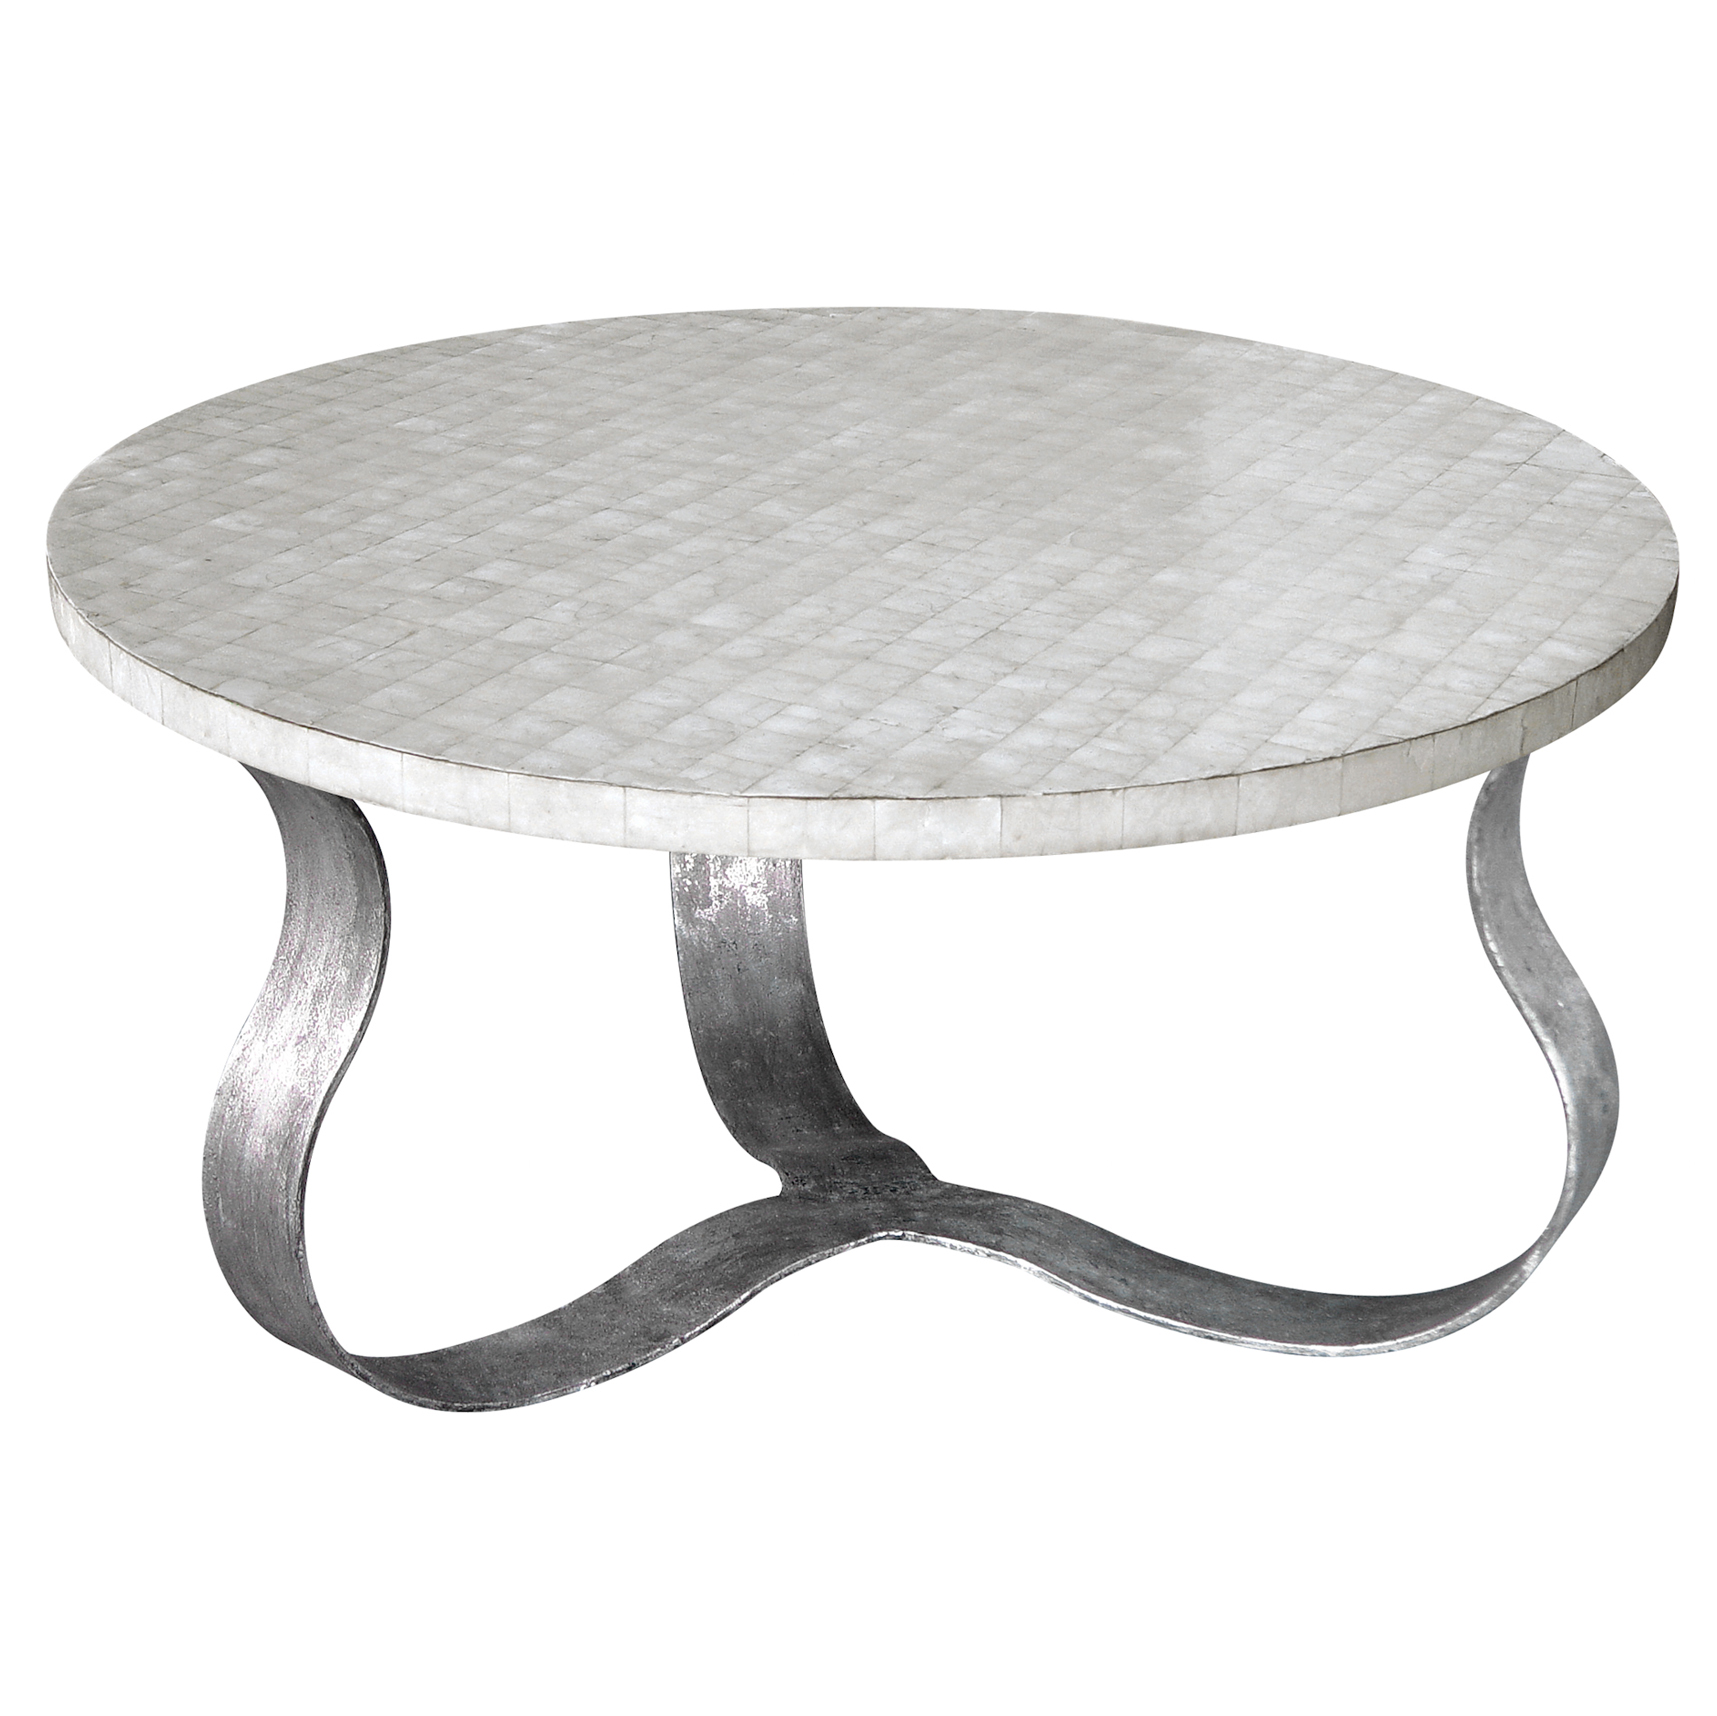 Pico Oly White Shell Antique Silver Coffee Table